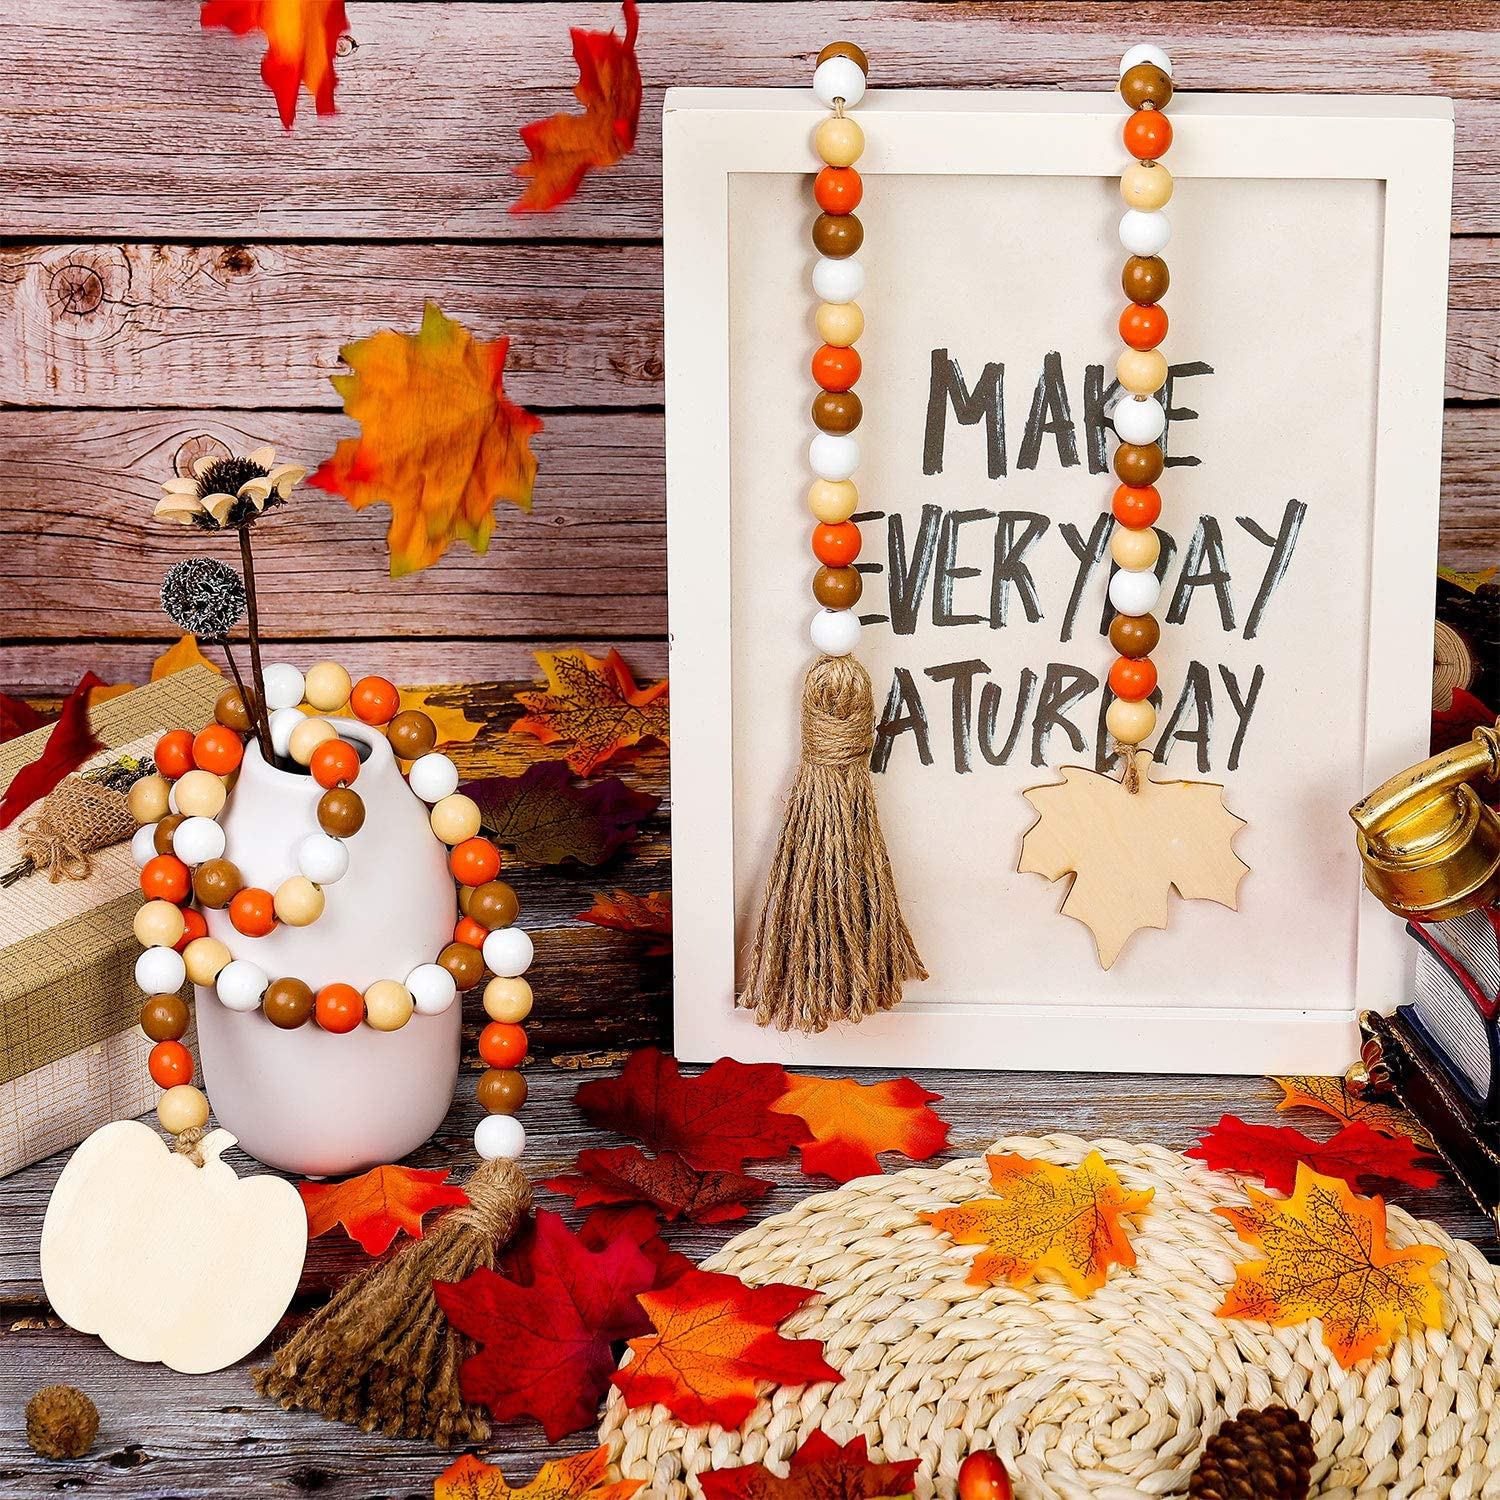 Decorated with Maple Leaves and Pumpkin Beads for Halloween Thanksgiving Party Farmhouse Wall Hanging Decorations WILLBOND Halloween Wooden Bead Garland Wreath with Tassel